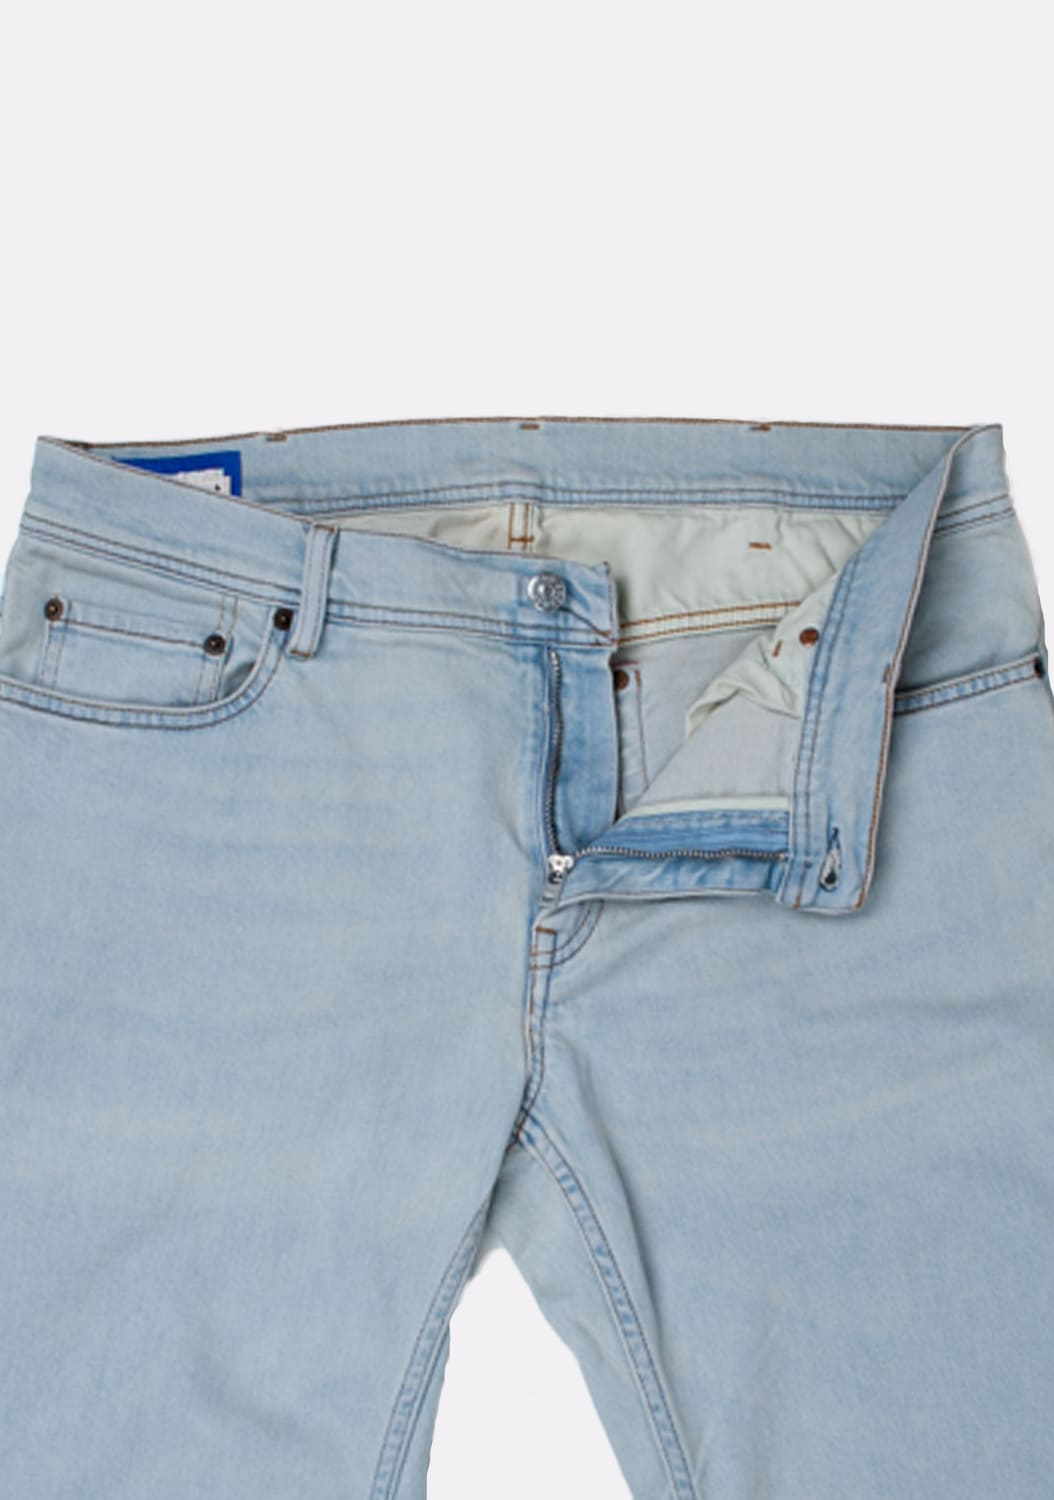 Acne-Studios-Blå-Konst-North-Lt-Blue-34-32-urock-dzinsai (4)